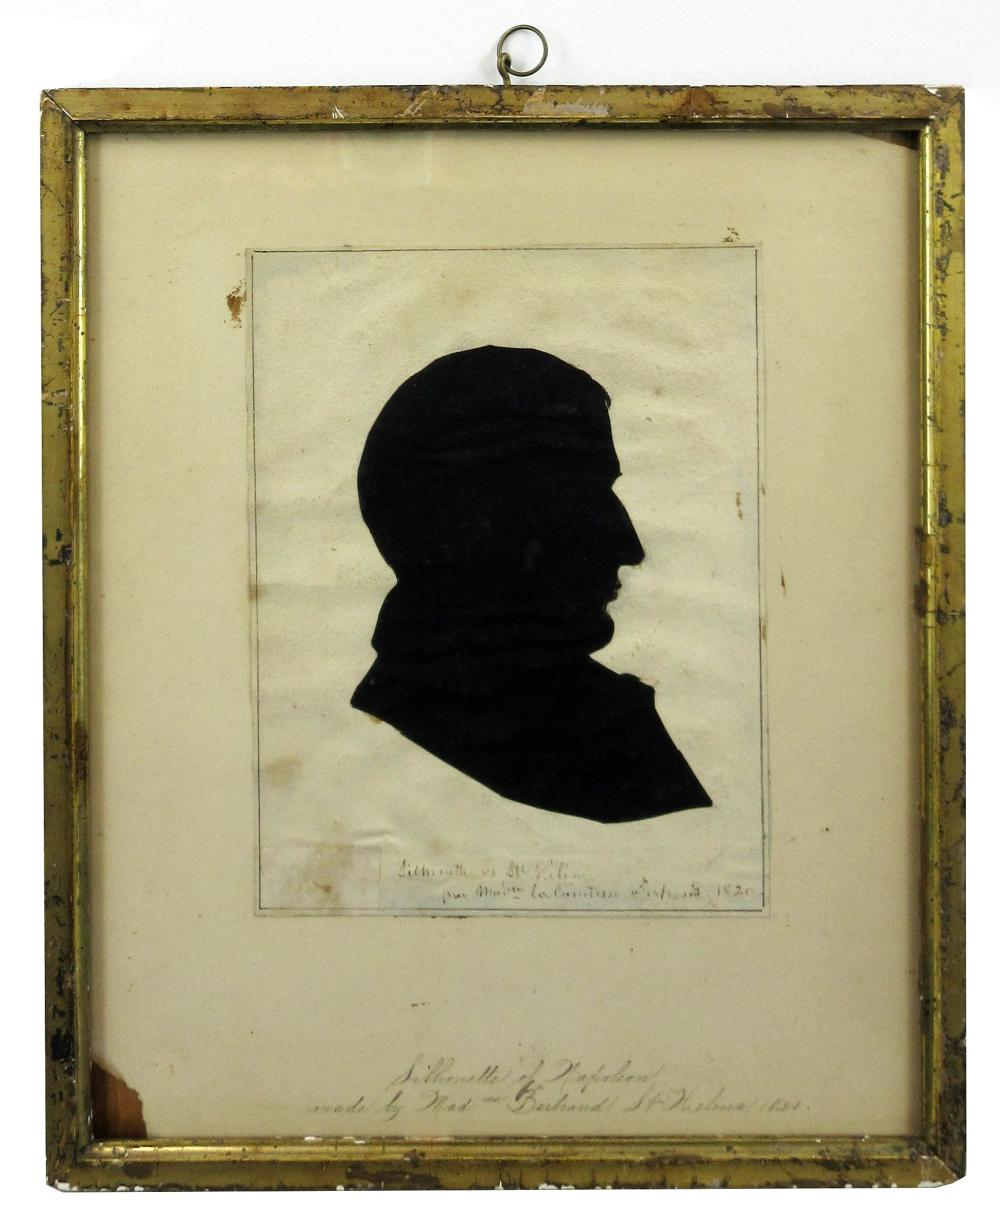 Spectacular Napoleon Bonaparte Silhouette Made by His Devoted Follower's Wife at St. Helena One Year Before His Death, Ex-Nicholson Napoleon Collection